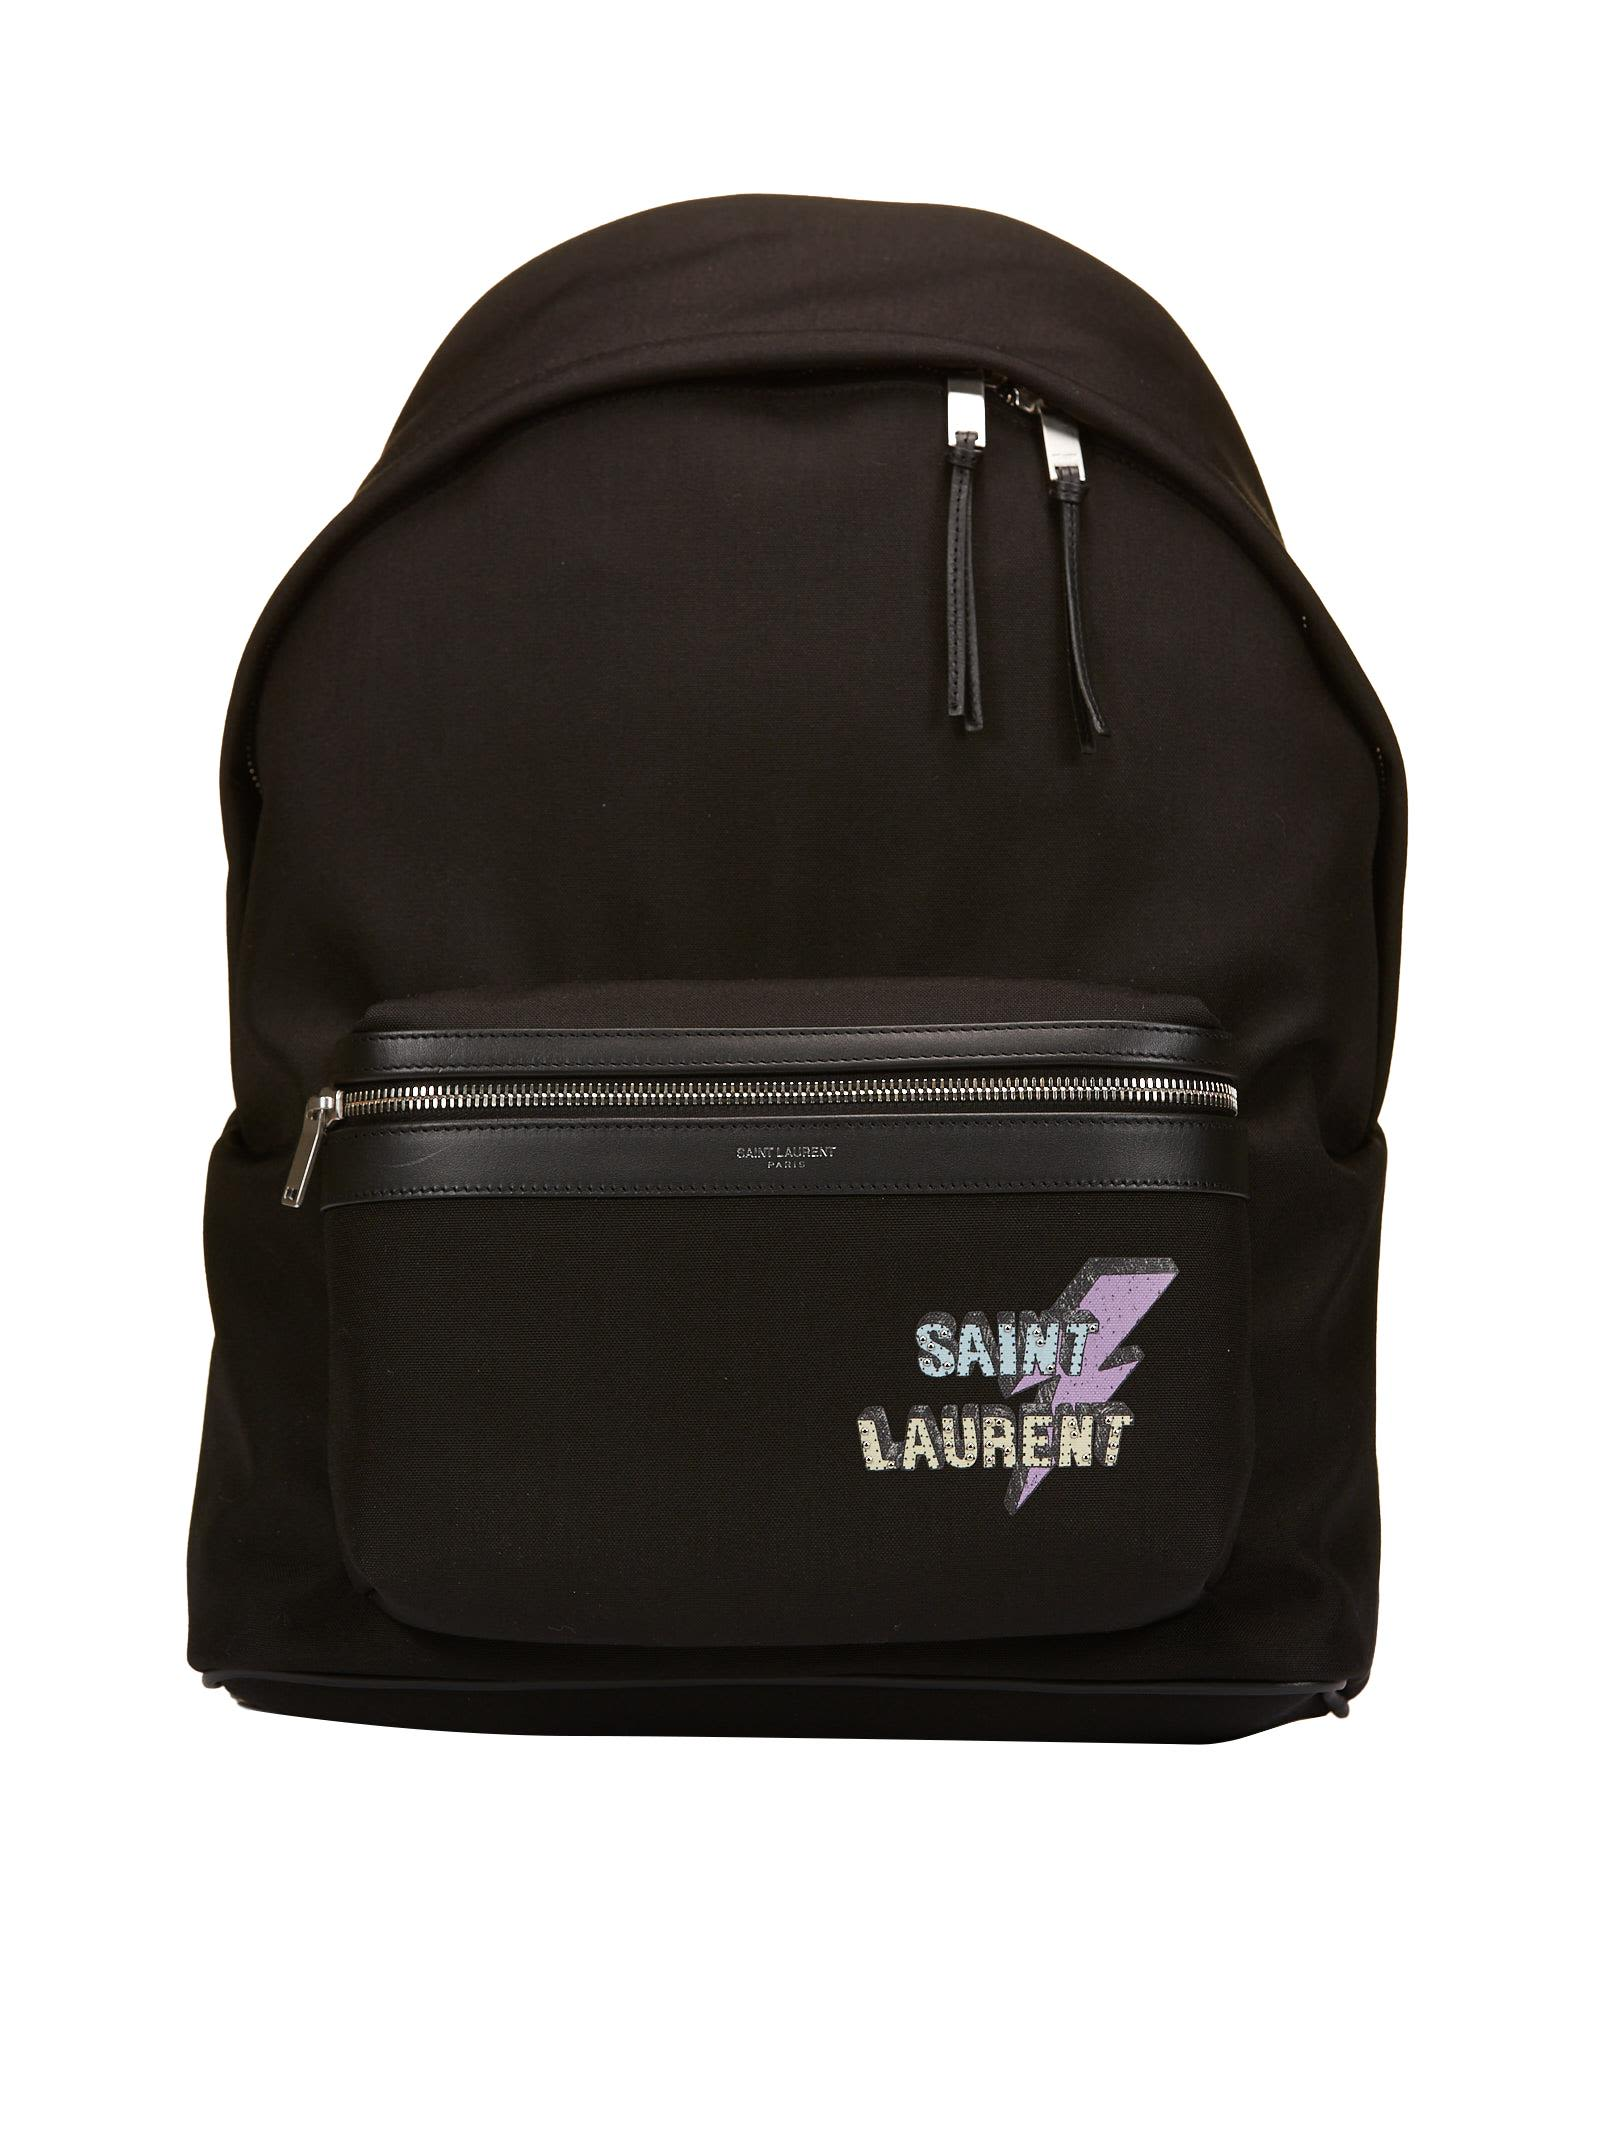 SAINT LAURENT LOGO PRINT BACKPACK